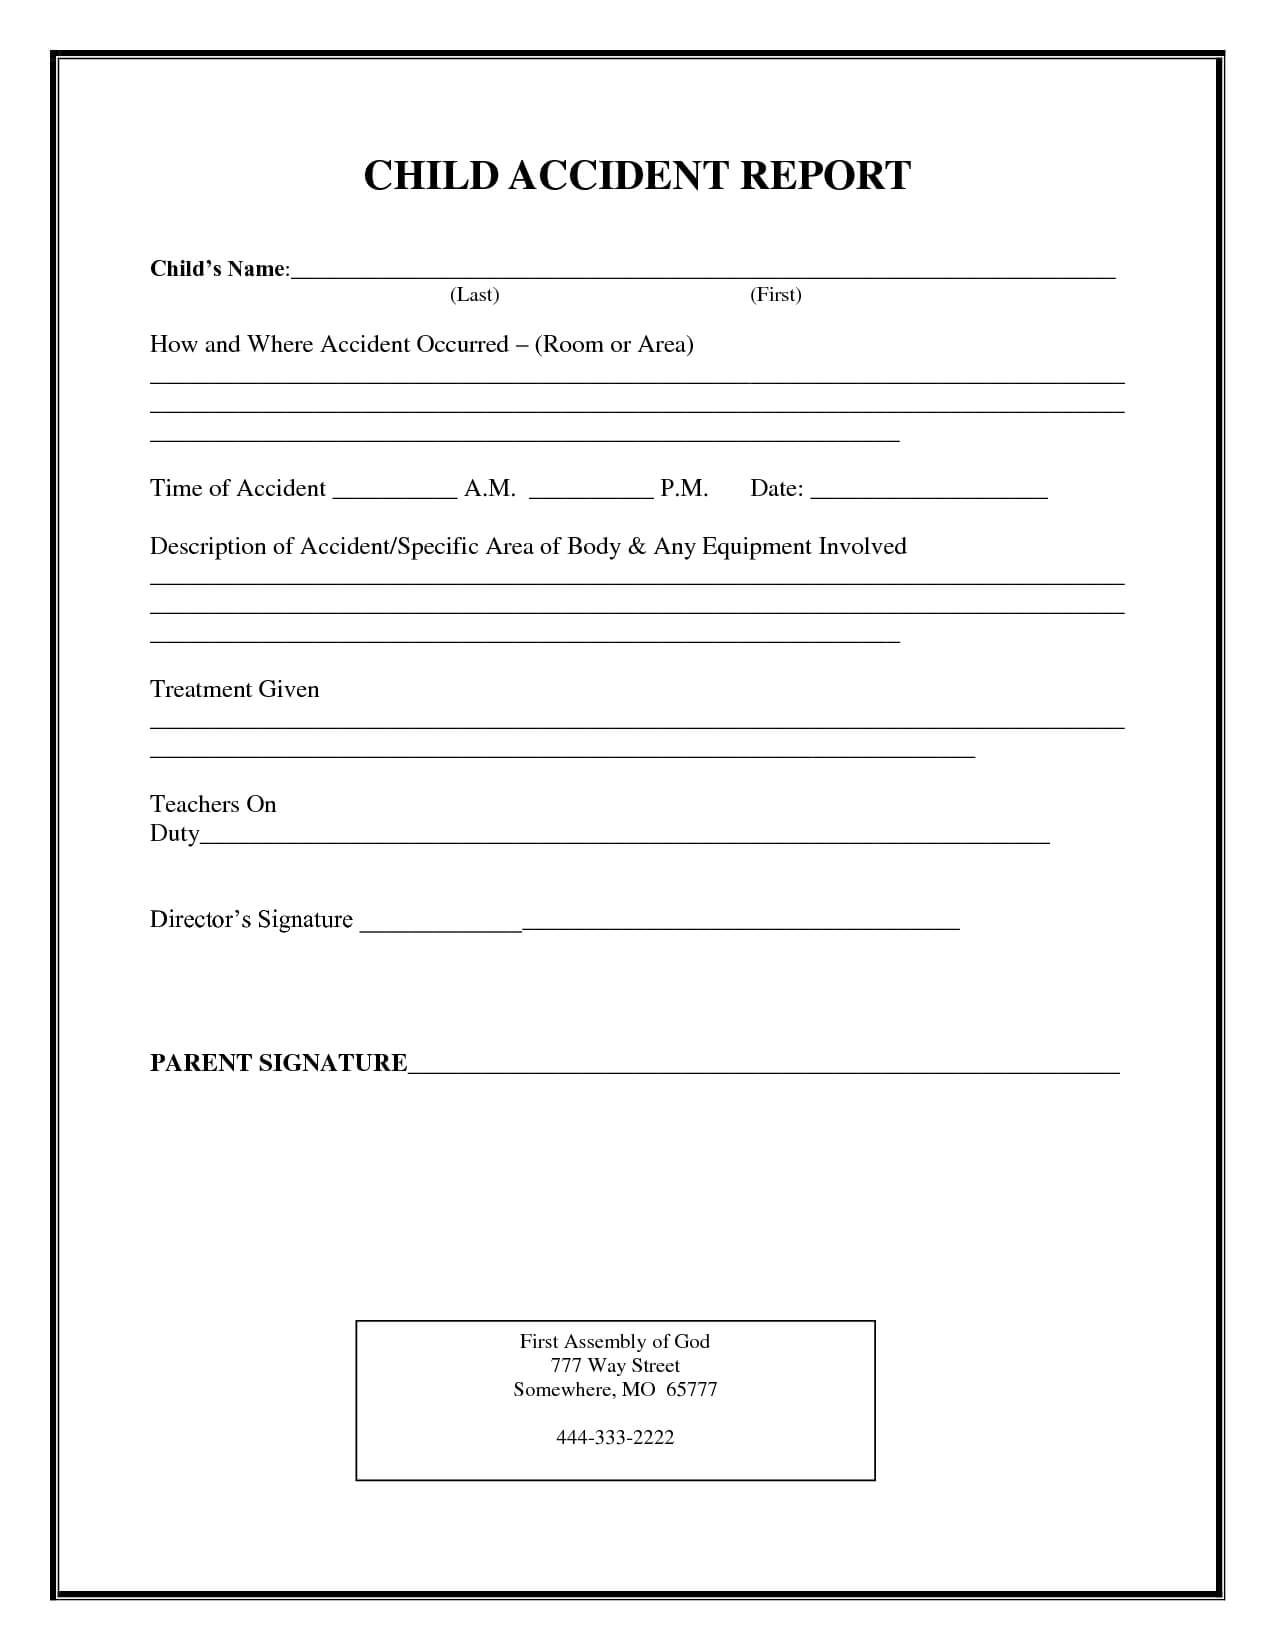 Incident Report Form Child Care | Child Accident Report With School Incident Report Template